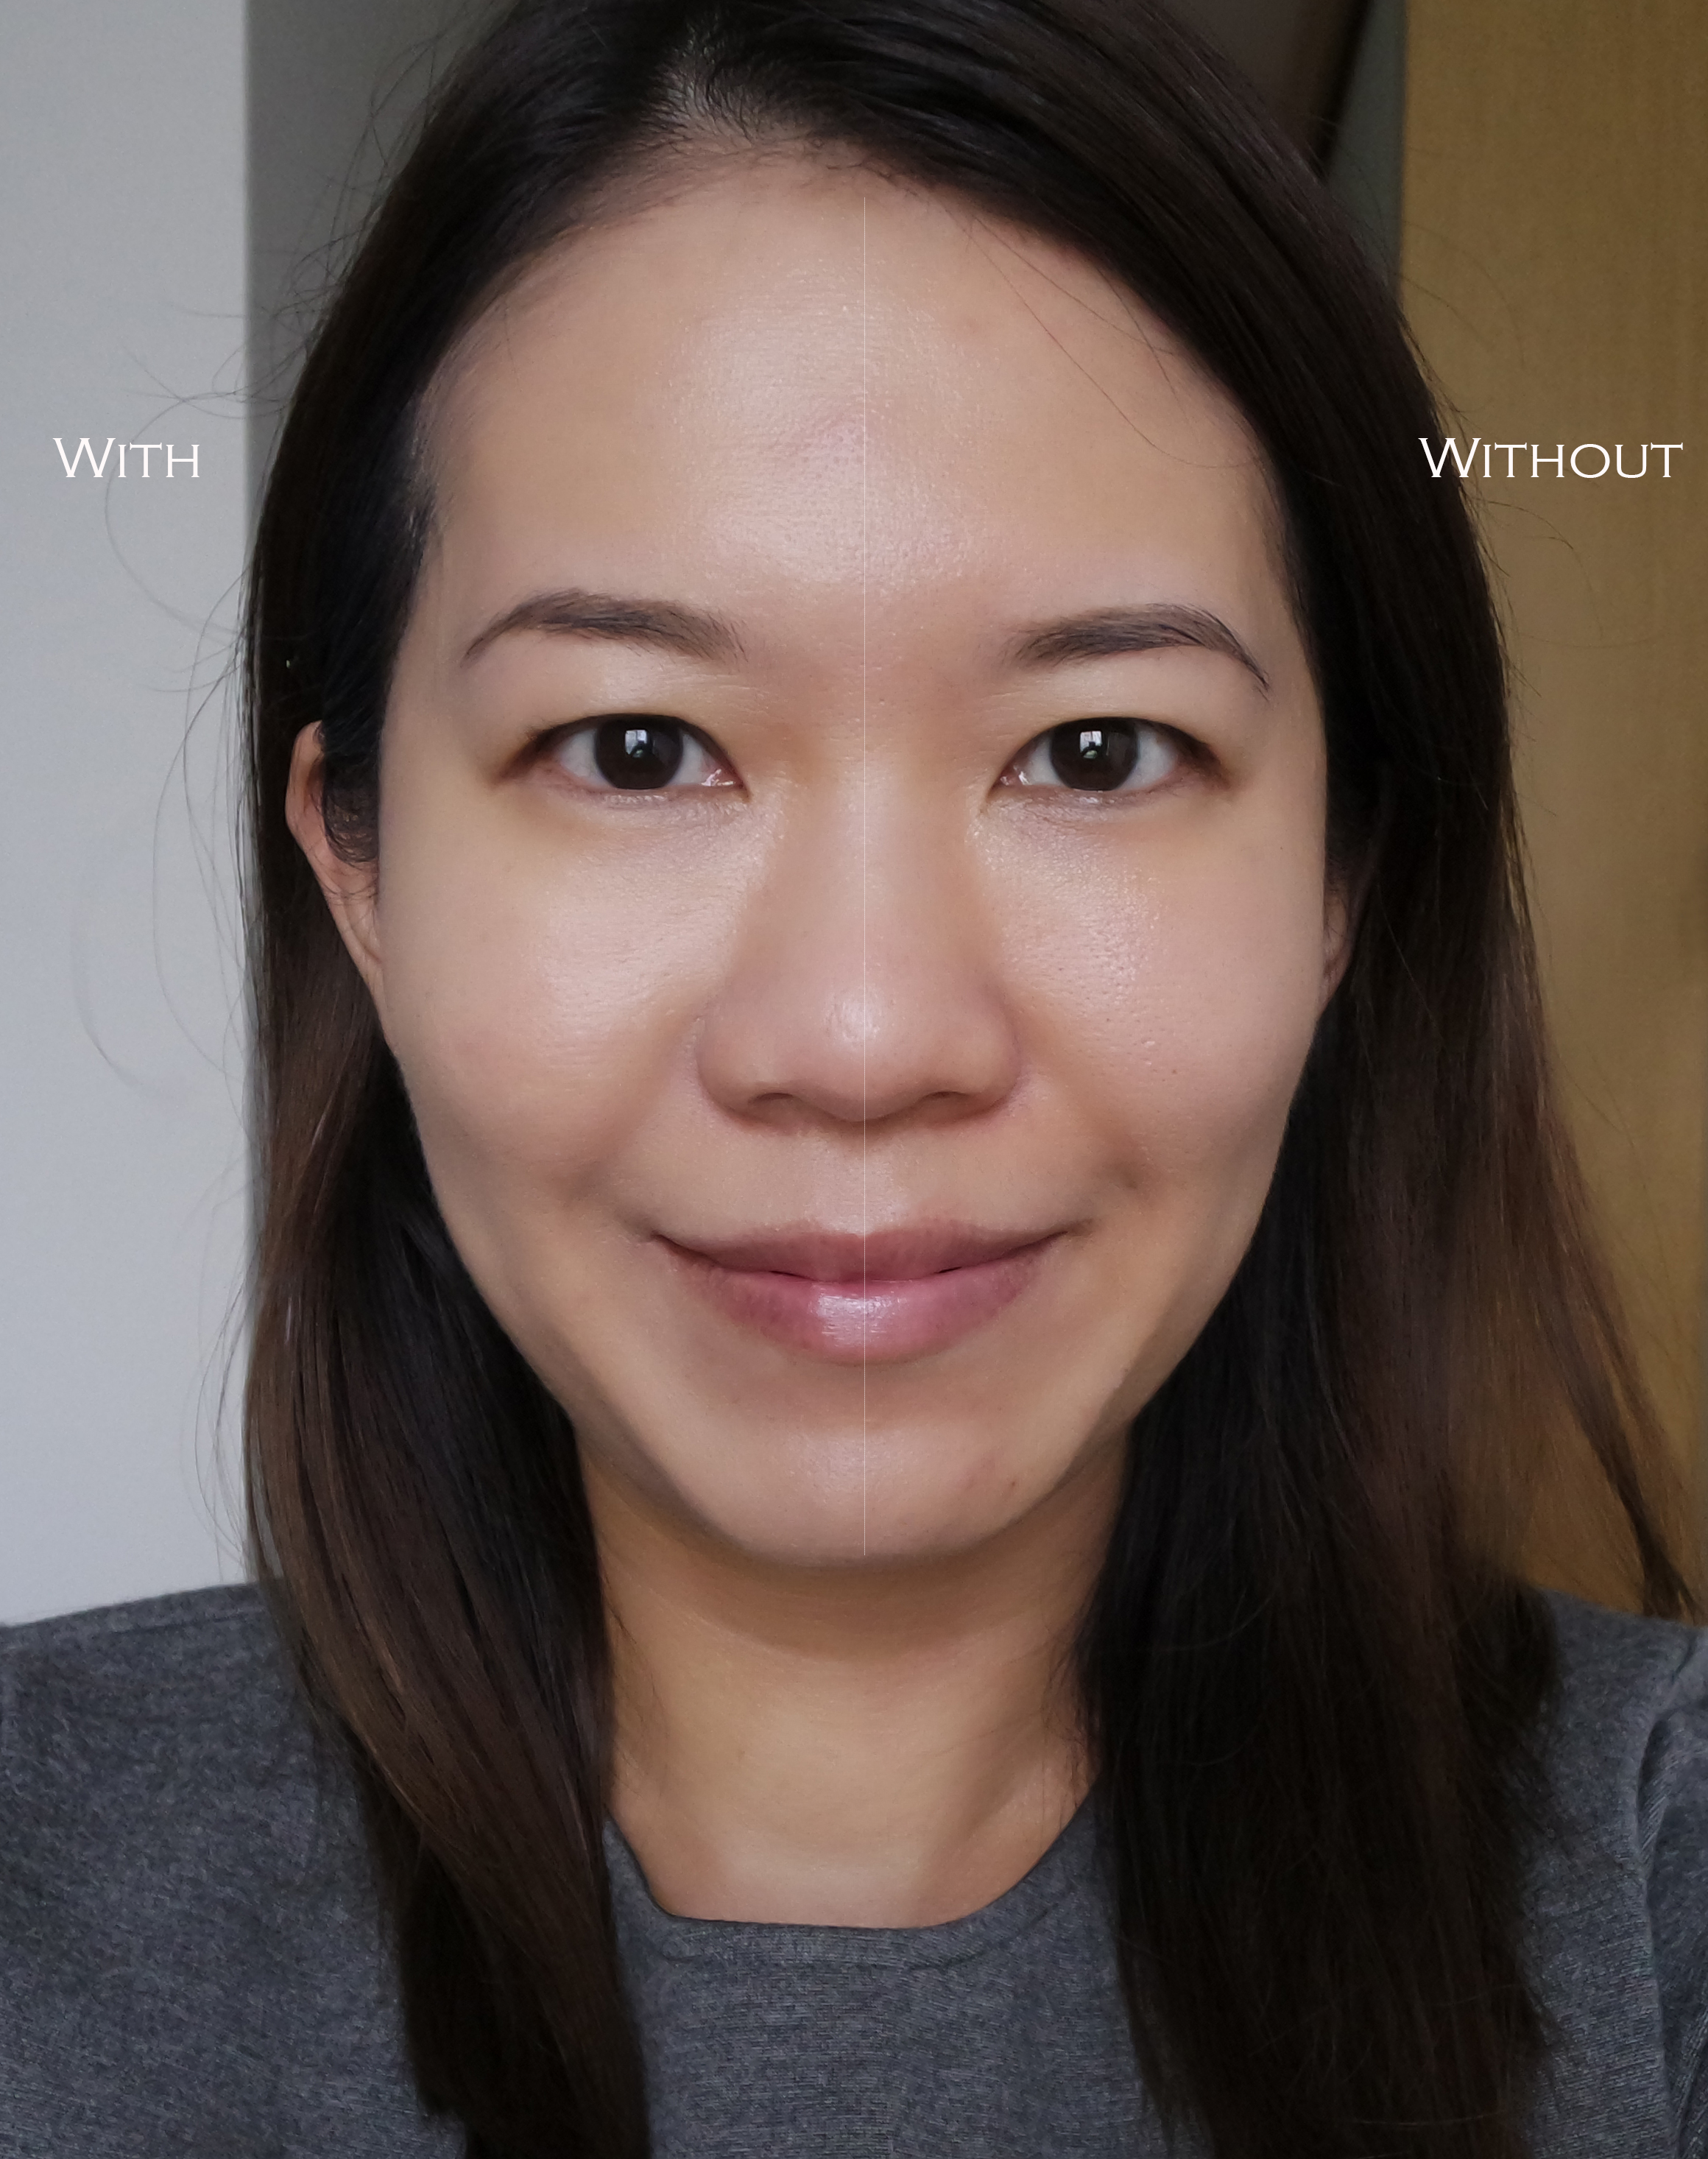 Shiseido Synchro Skin Glow Foundation before after effects comparison